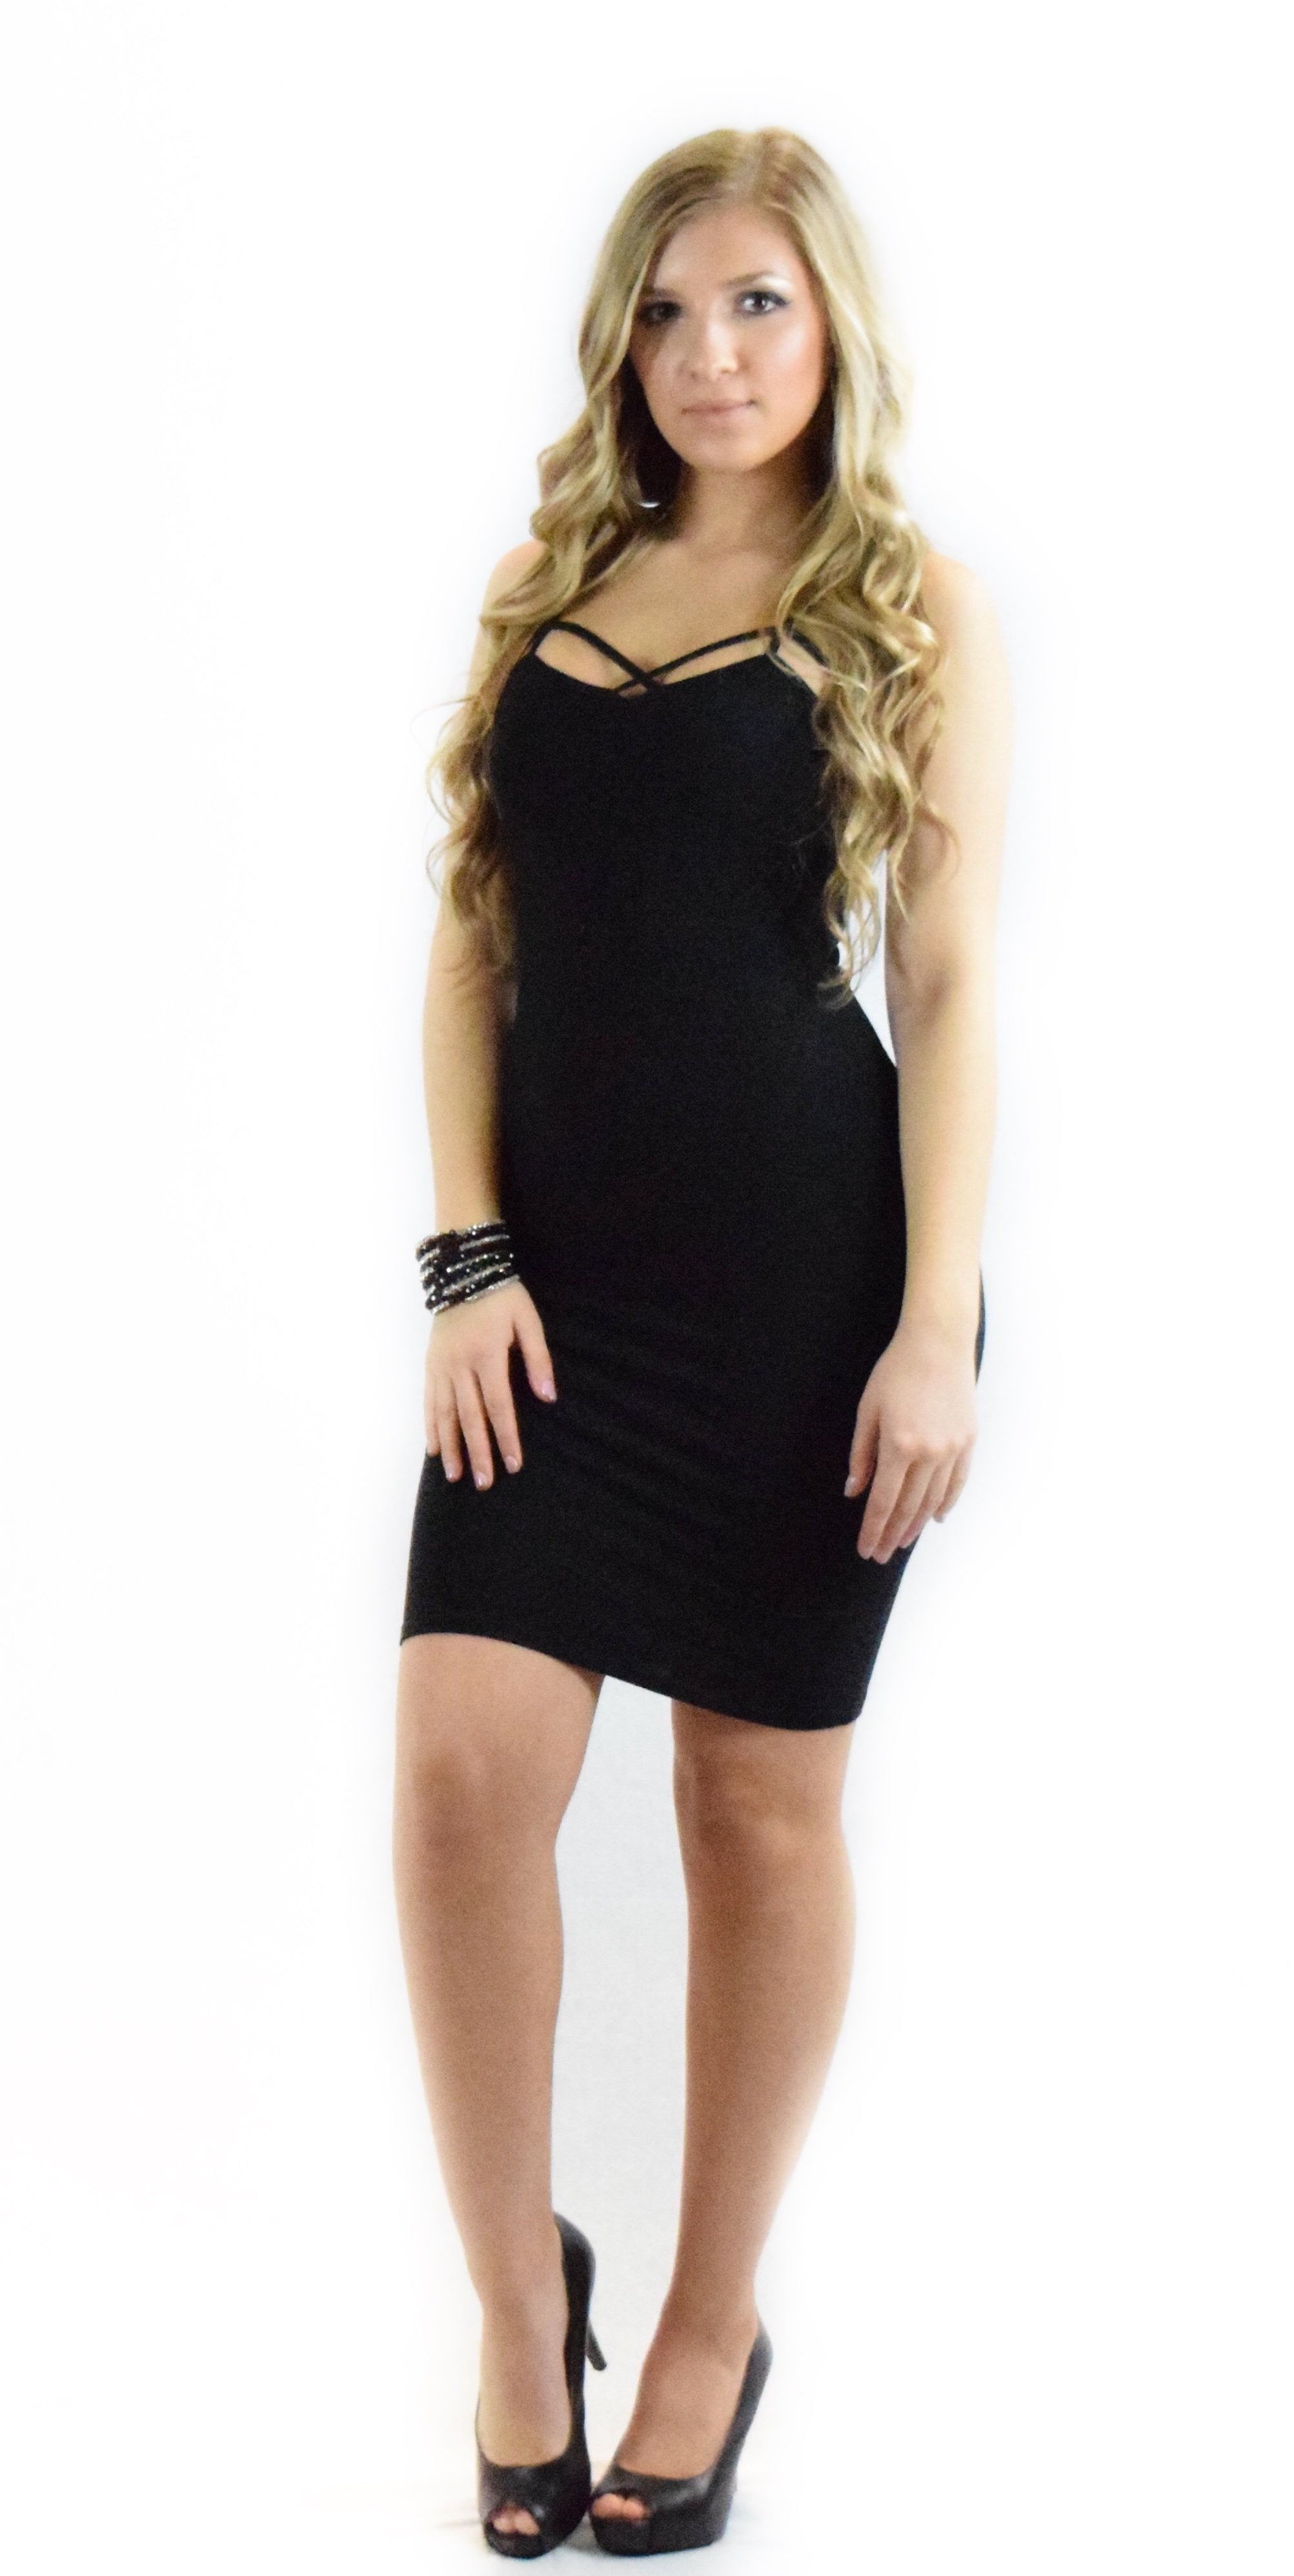 little black dress formal stay spaghetti form fitting curve hugging any occasion fashion clothing woman trending style